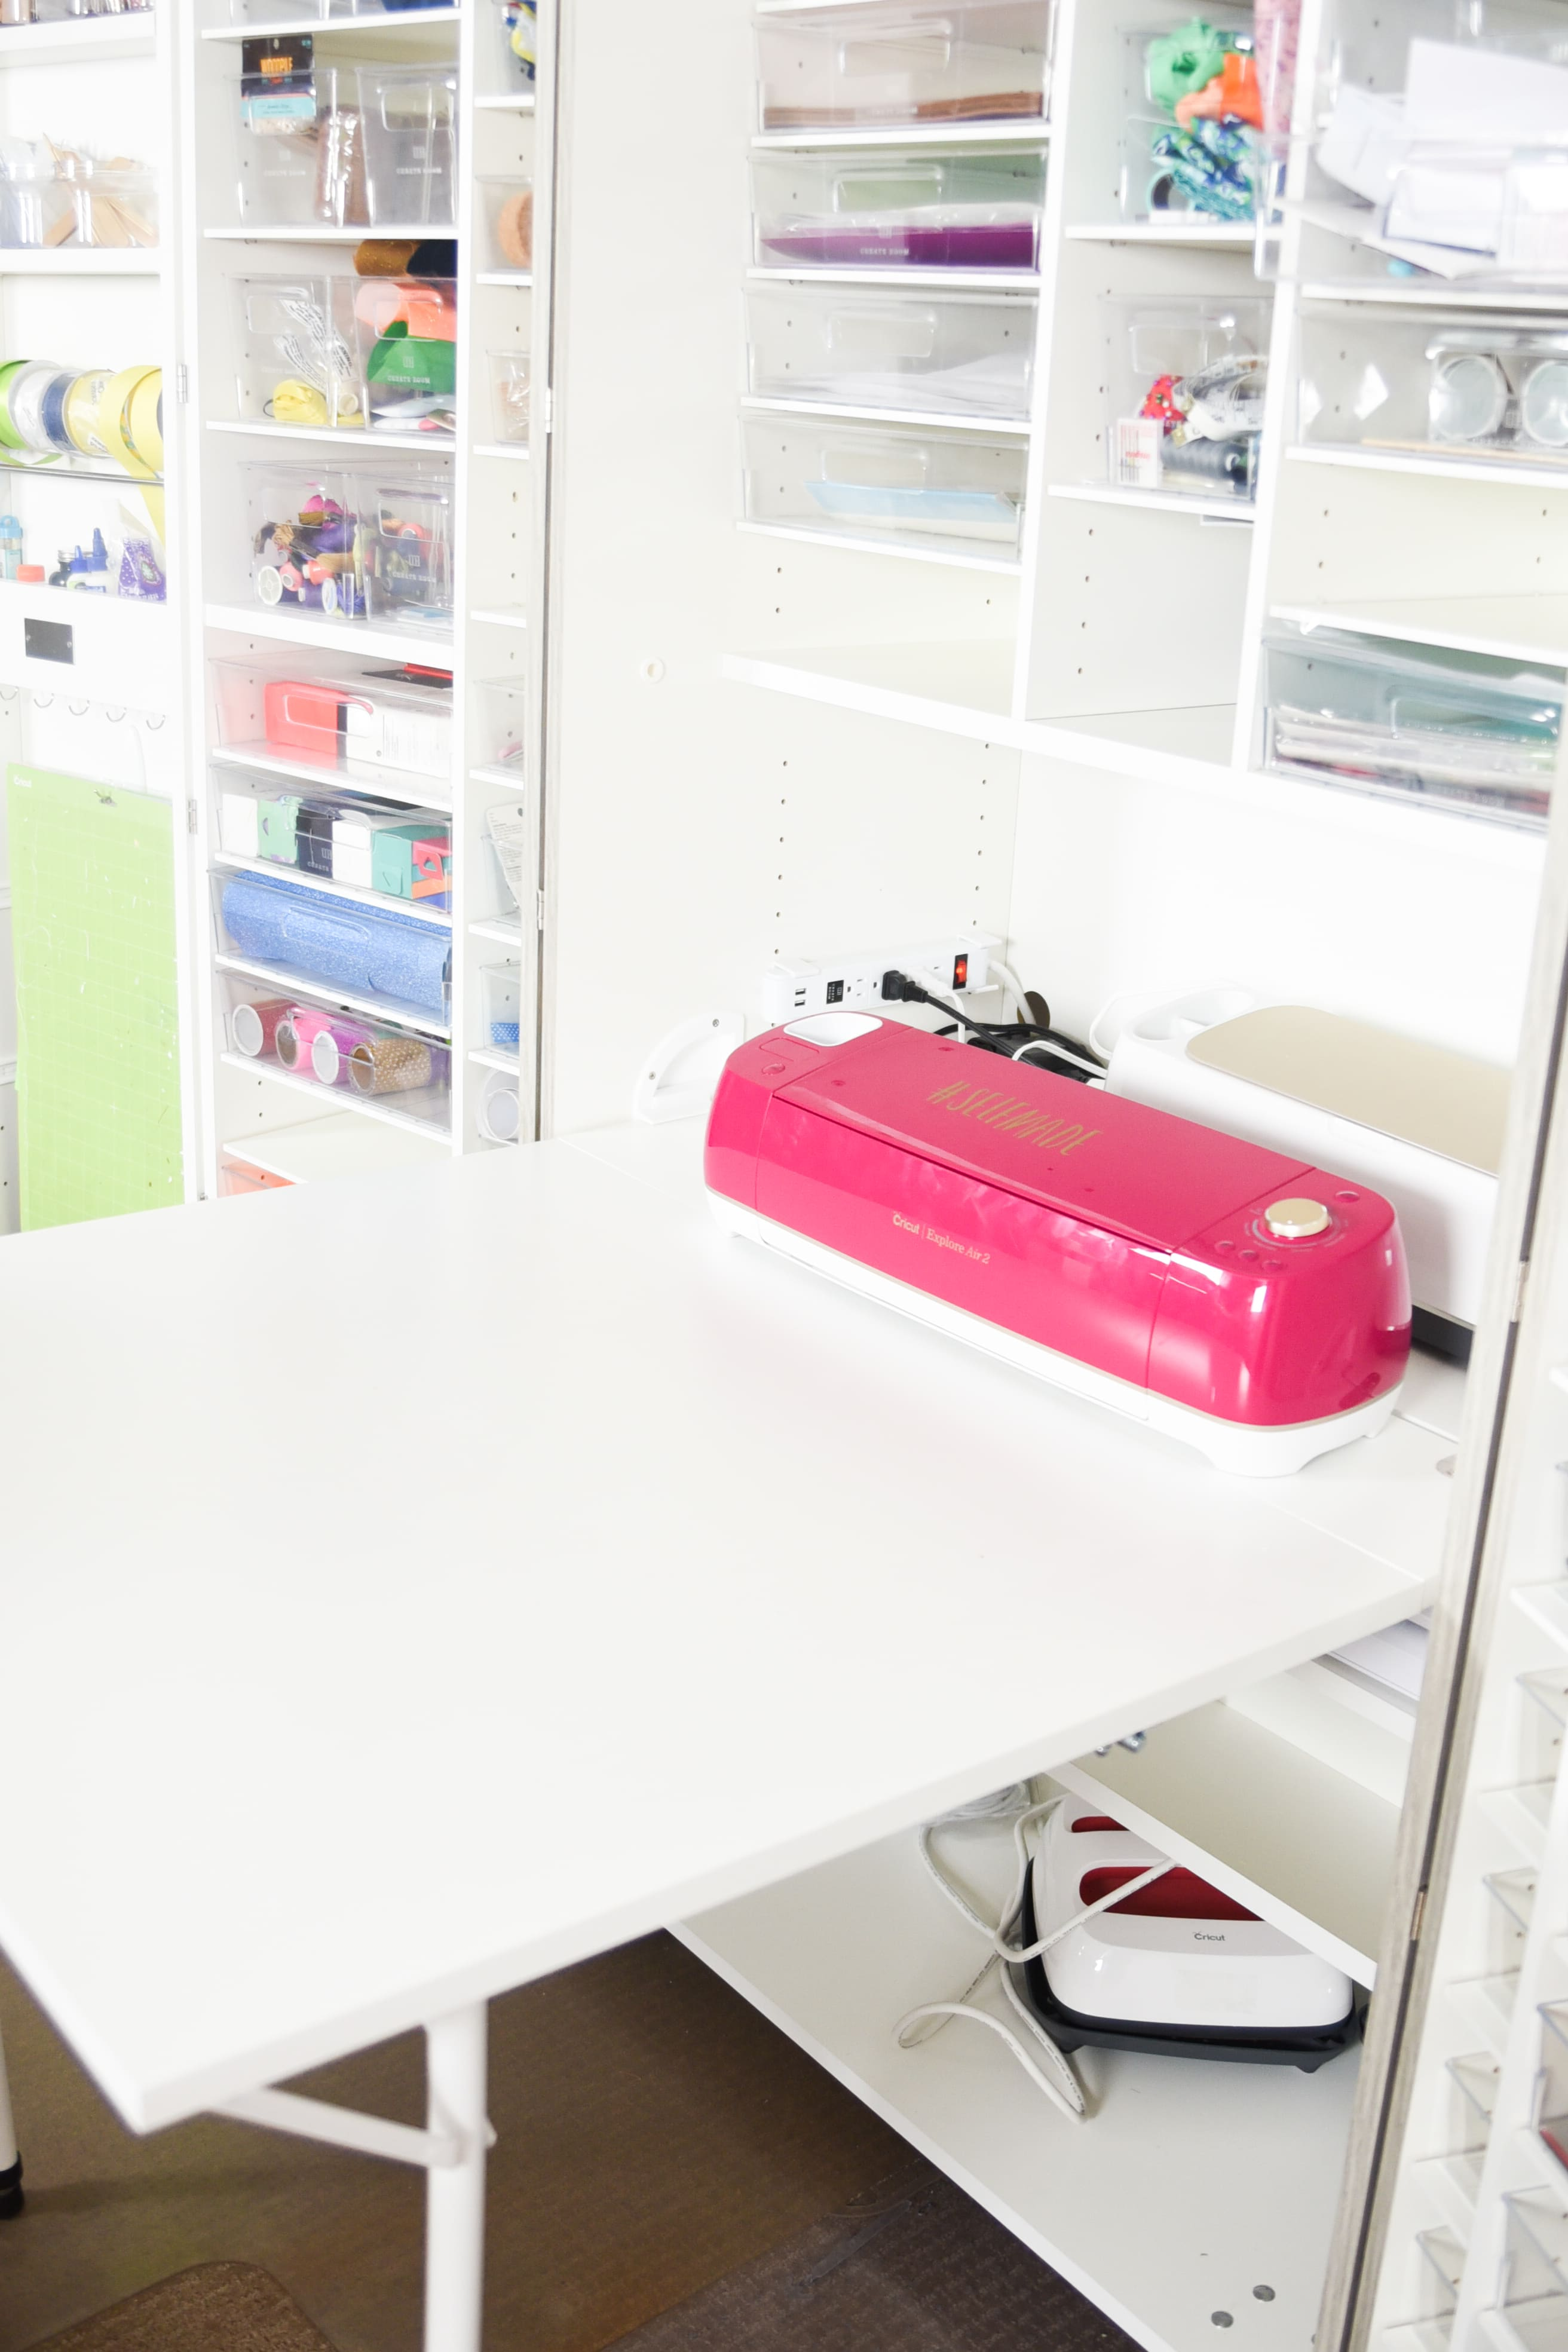 Cricut Explore Air 2 sitting on DreamBox craft storage